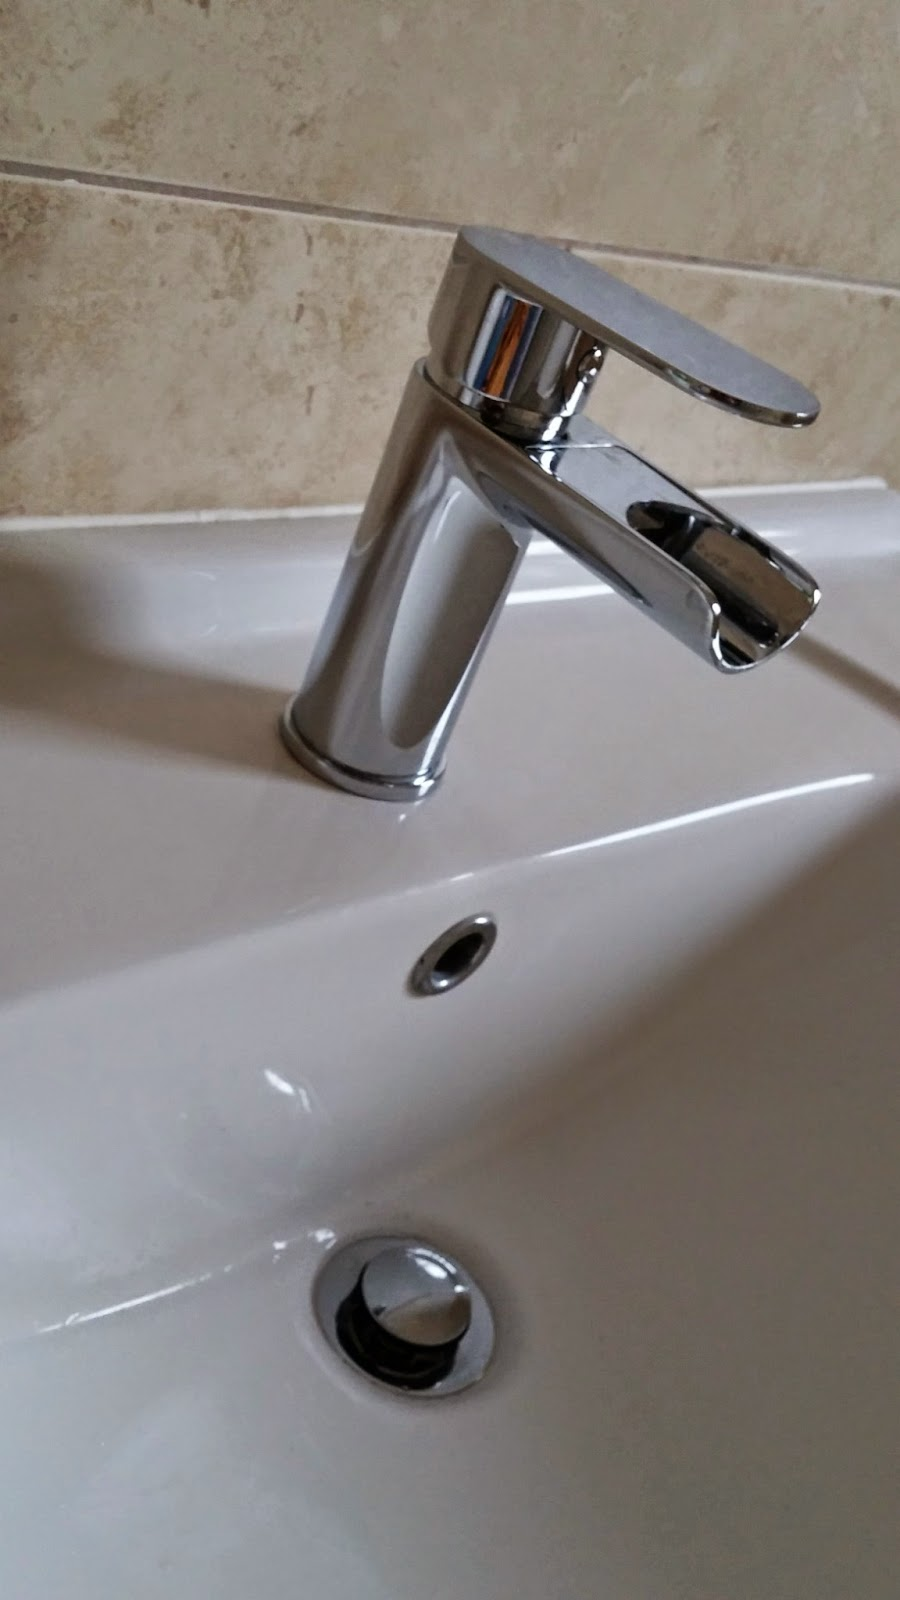 new tap in place